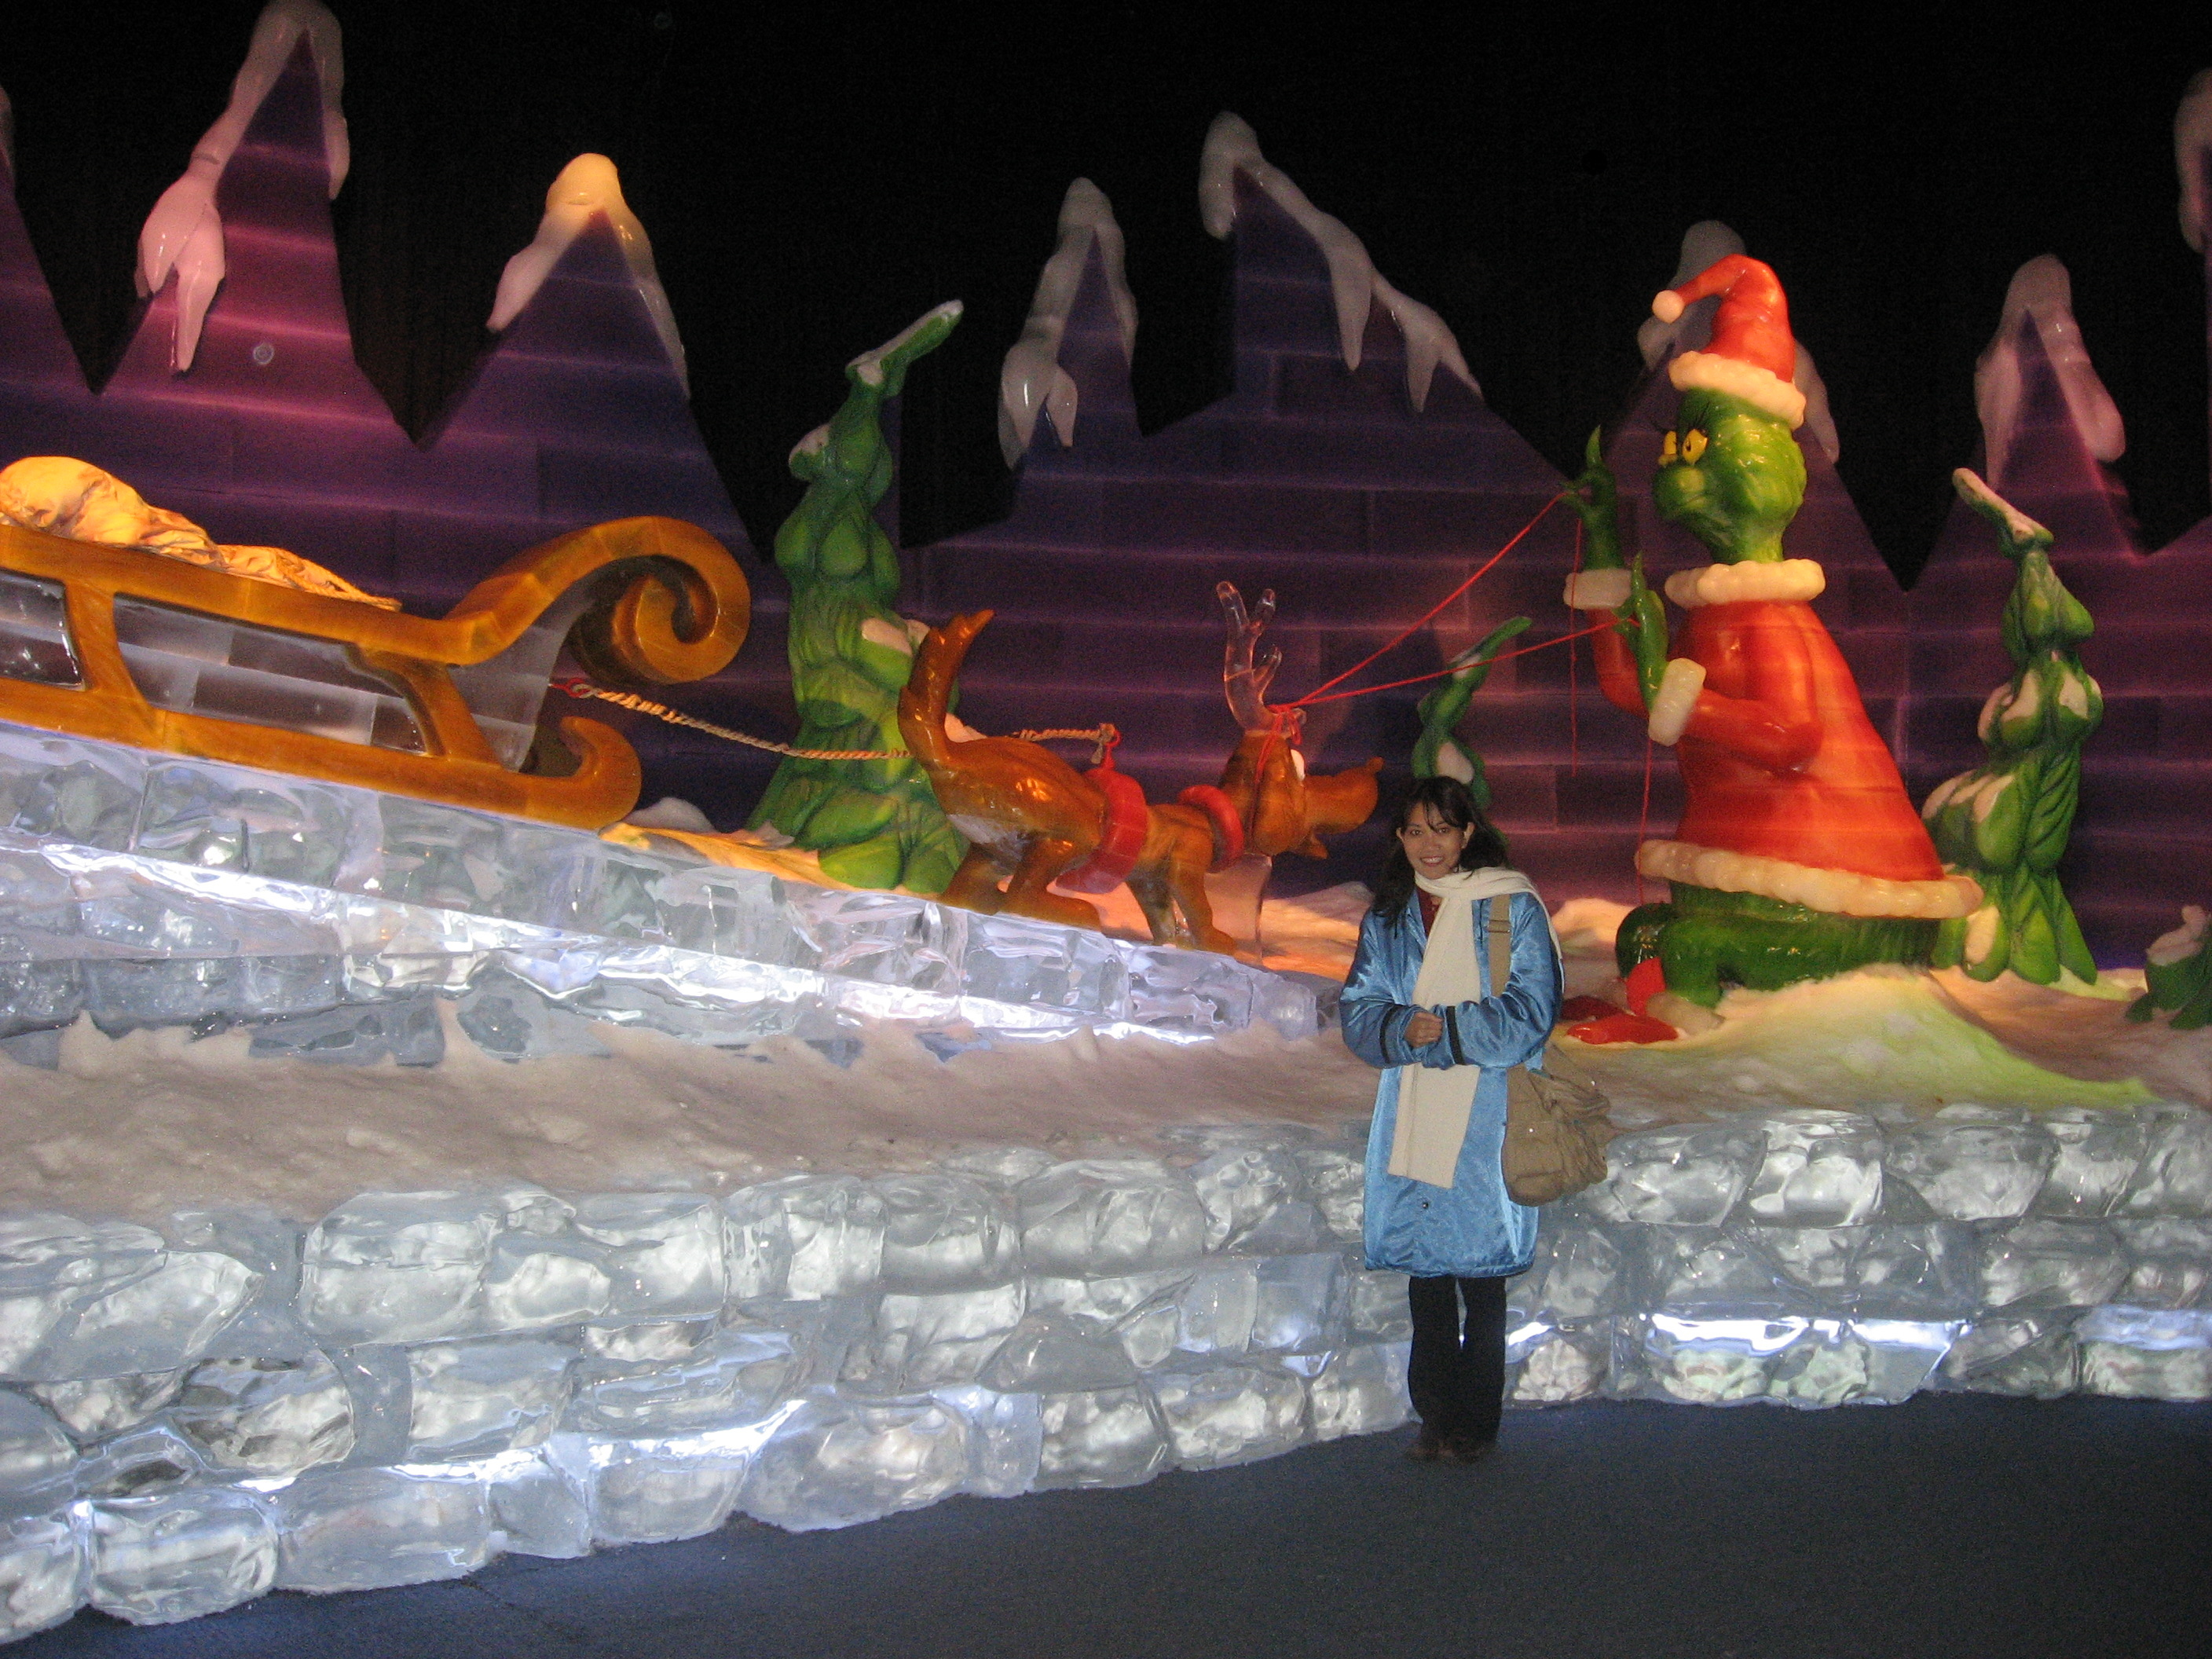 How To Make Bed Like Hotel How The Grinch Stole Christmas An Ice Sculpture Exhibit